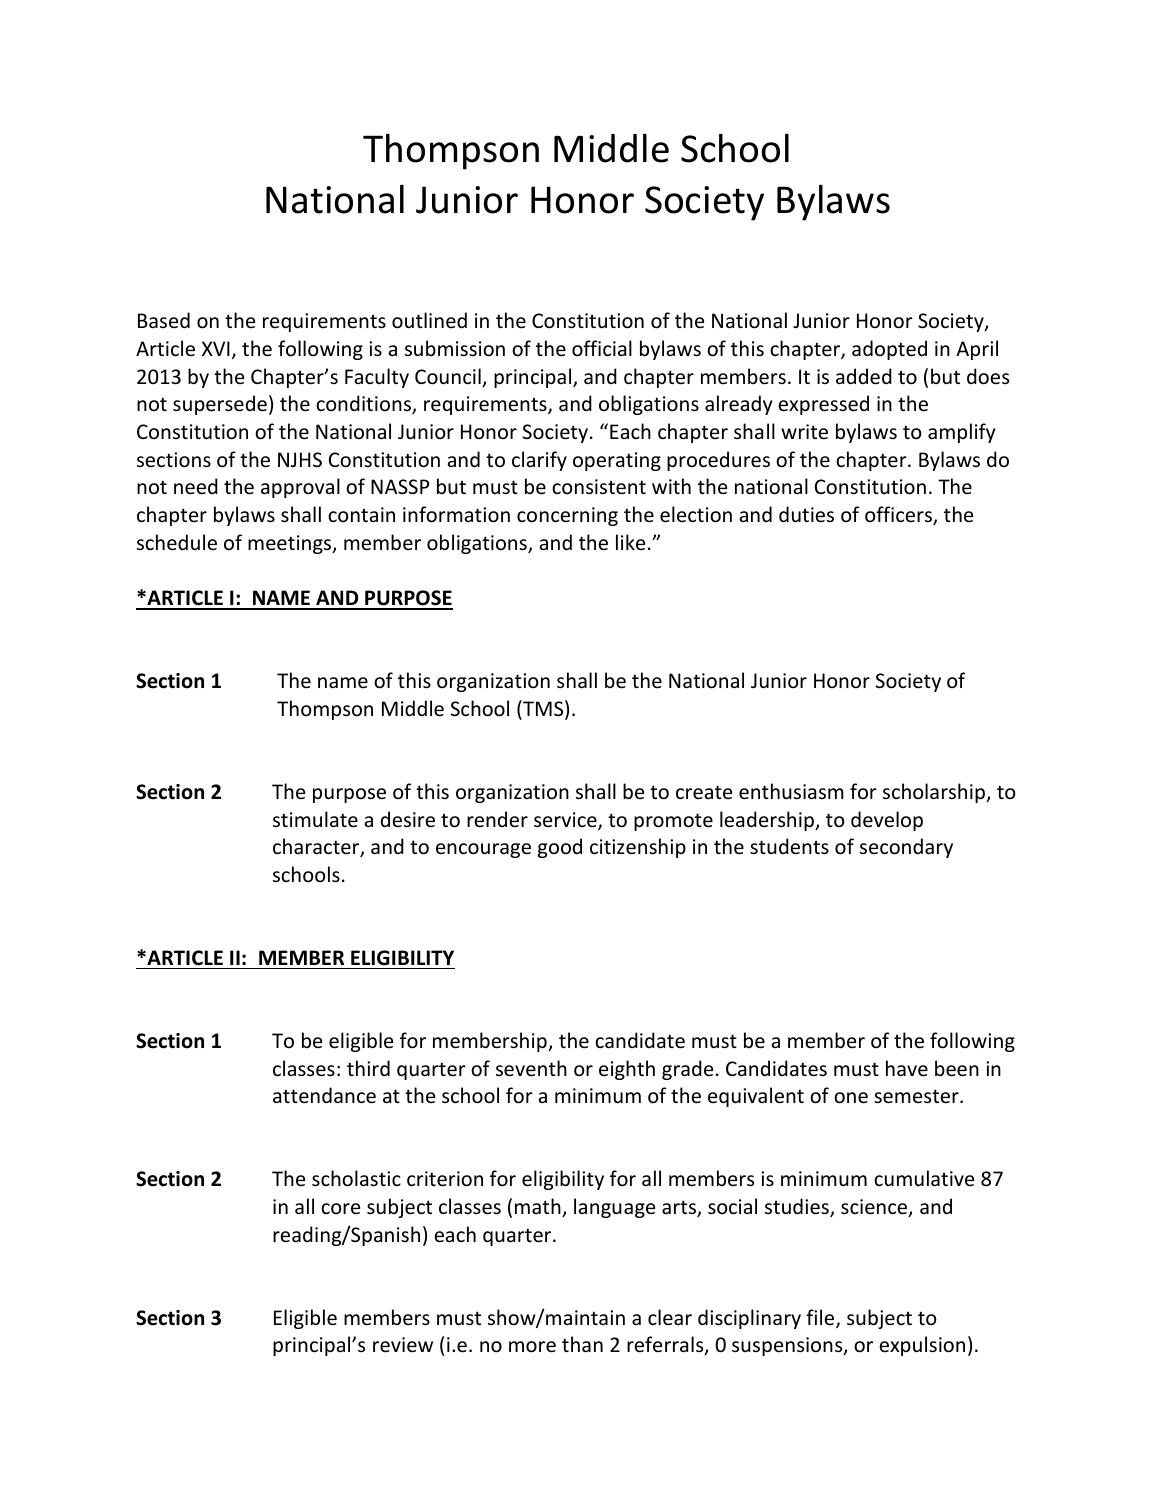 National Junior Honor Society application essay | Behavior Modification | Cognition